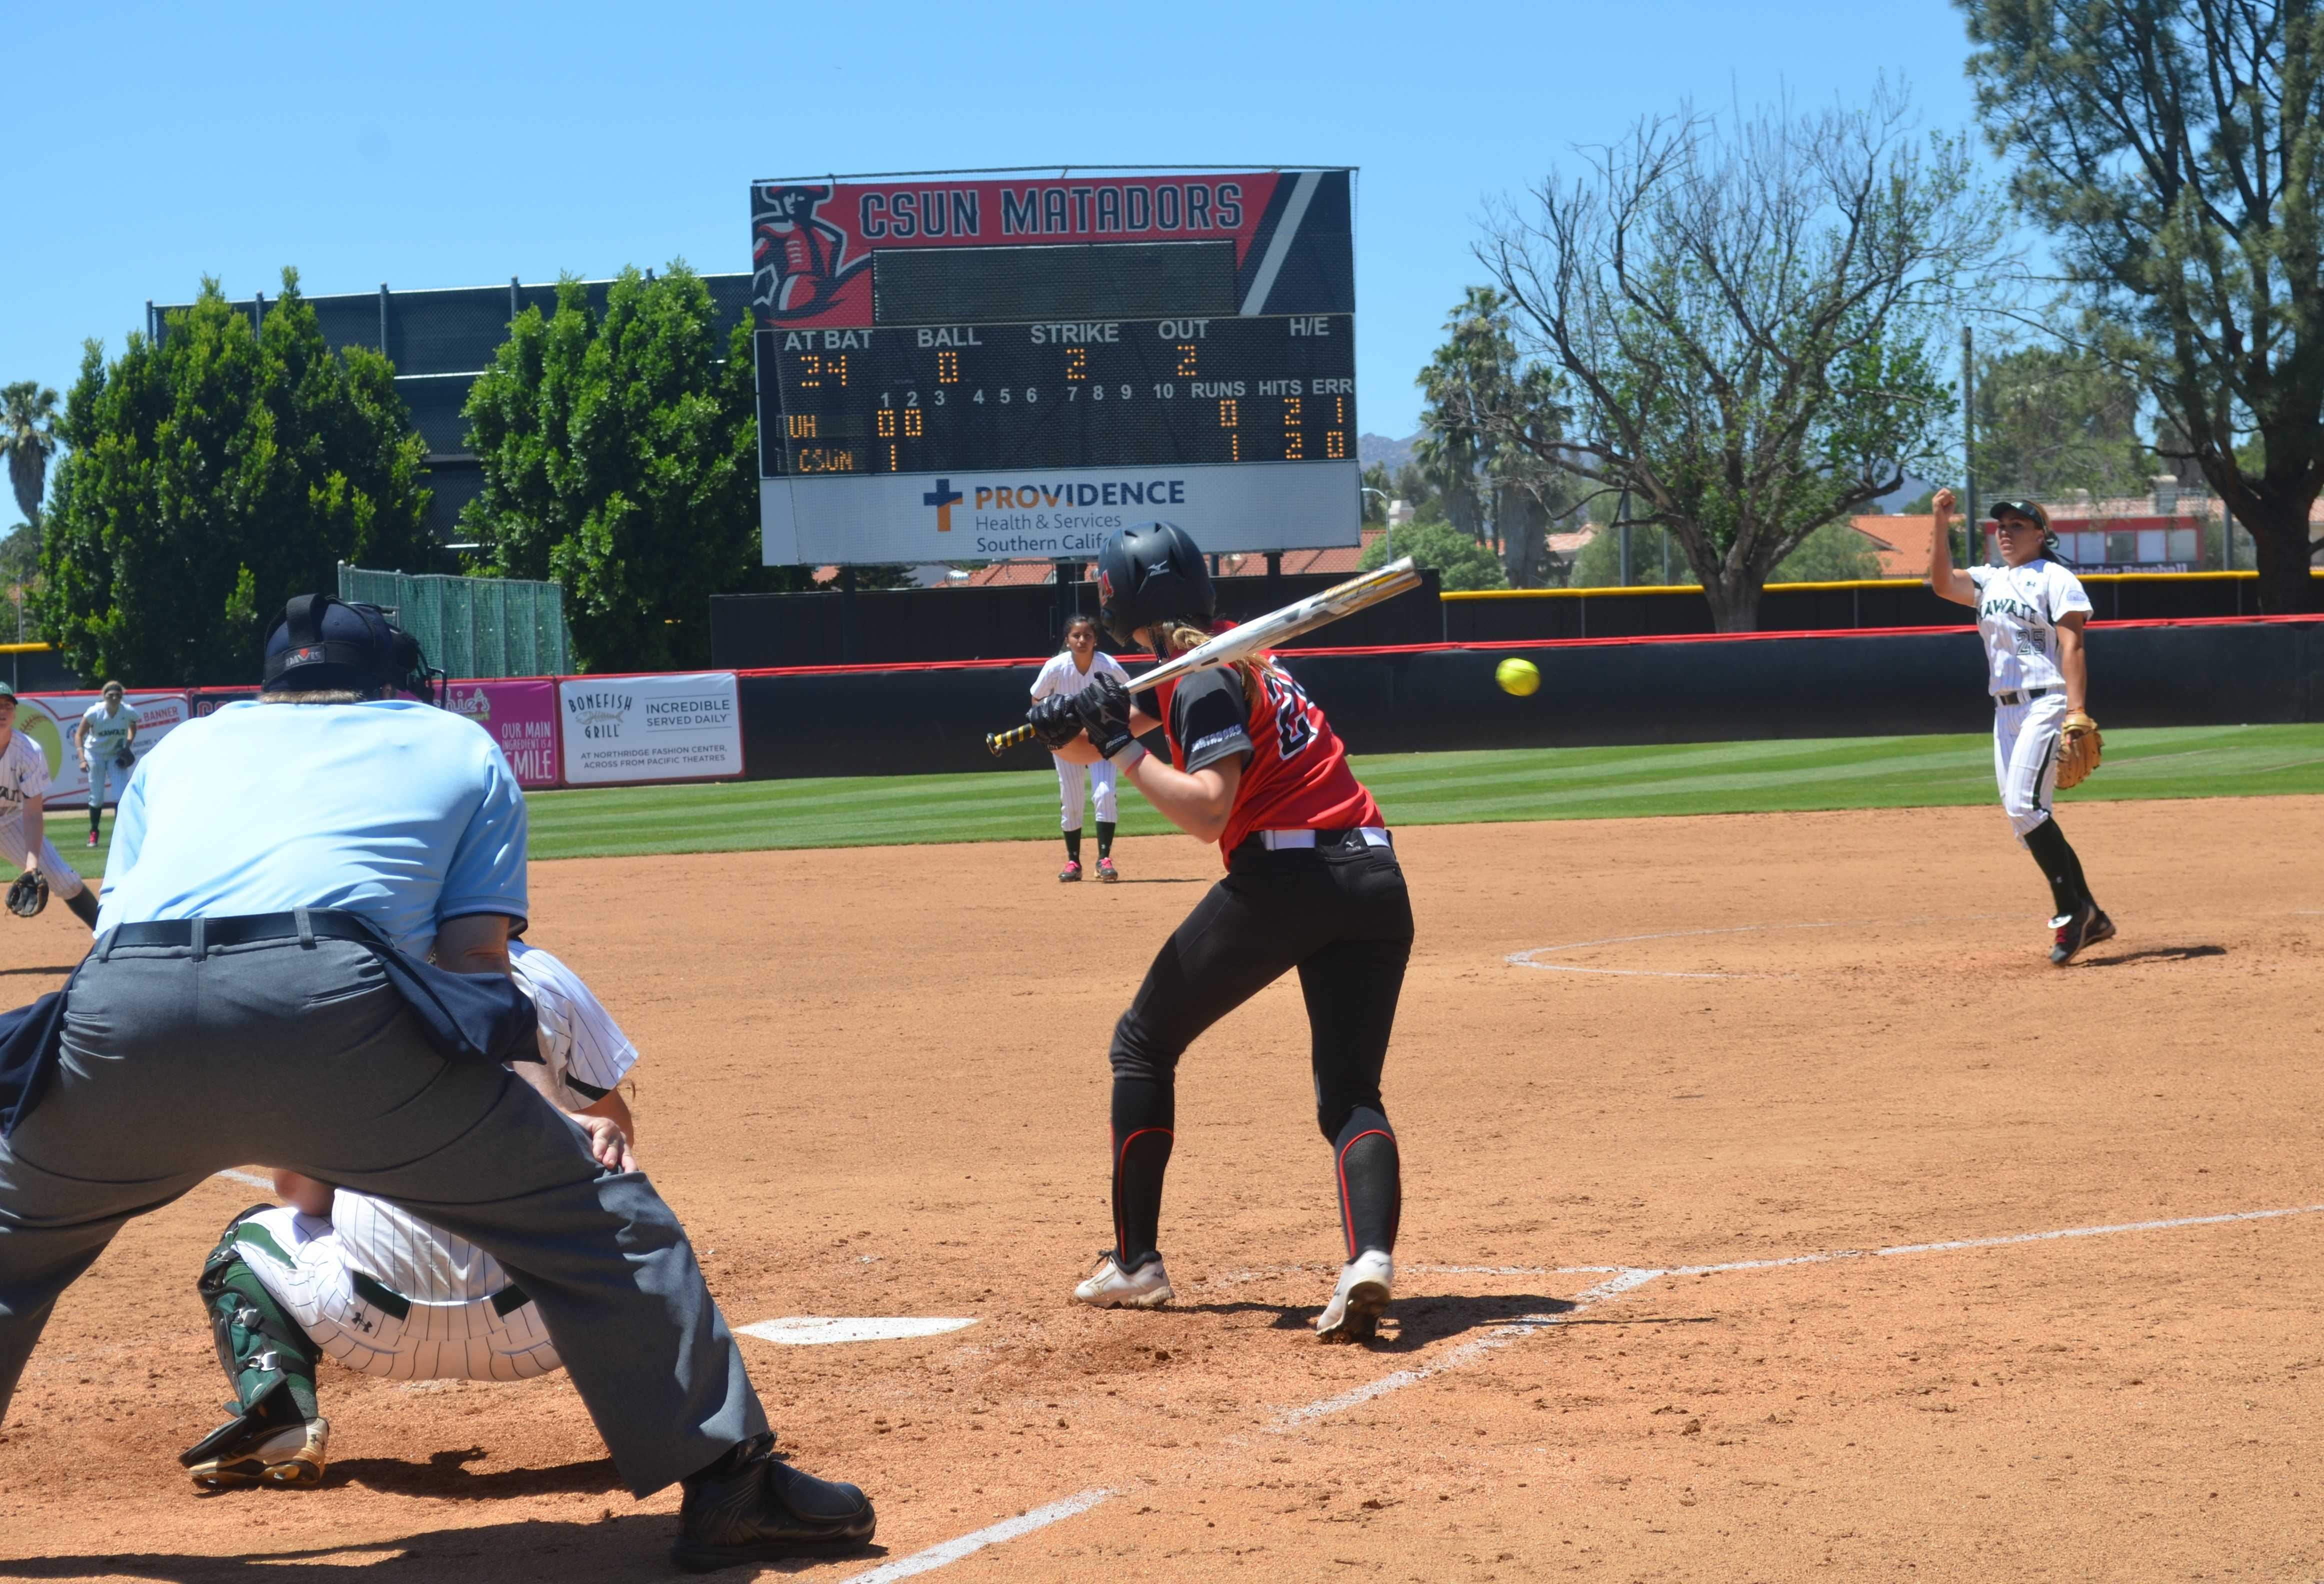 Senior+Kaitlin+Toerner+prepares+to+swing+during+CSUN%27s+2-0+win+over+the+University+of+Hawai%27i+on+Saturday%2C+May+2.+Natahlie+Ramirez%2FContributor